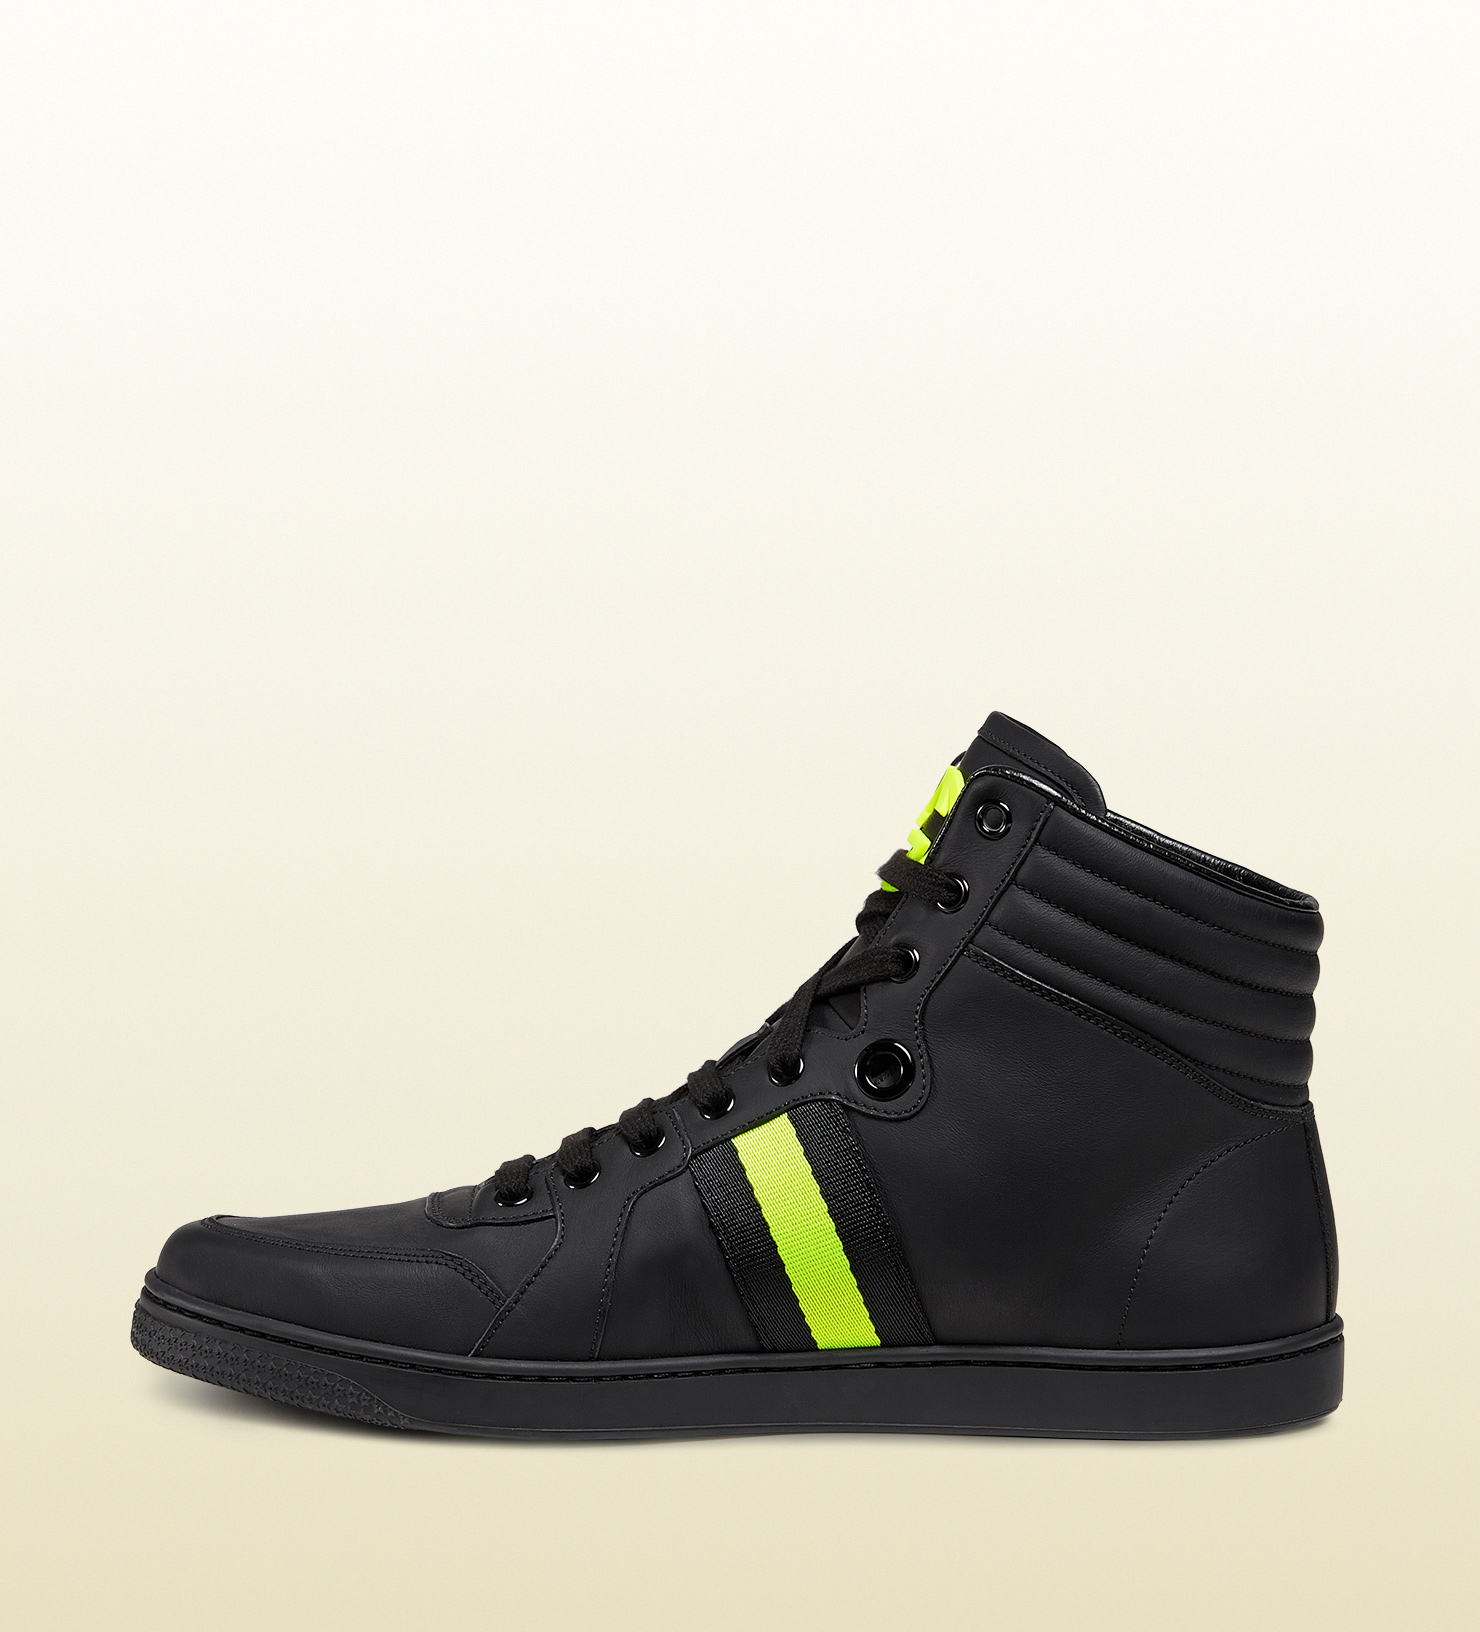 Italian Shoes For Men On Sale Images Kohls Mens Shirt  : gucci black black leather and neon high top sneaker from viaggio collection product 1 25097549 0 749442353 normal from favefaves.com size 1480 x 1632 jpeg 1214kB